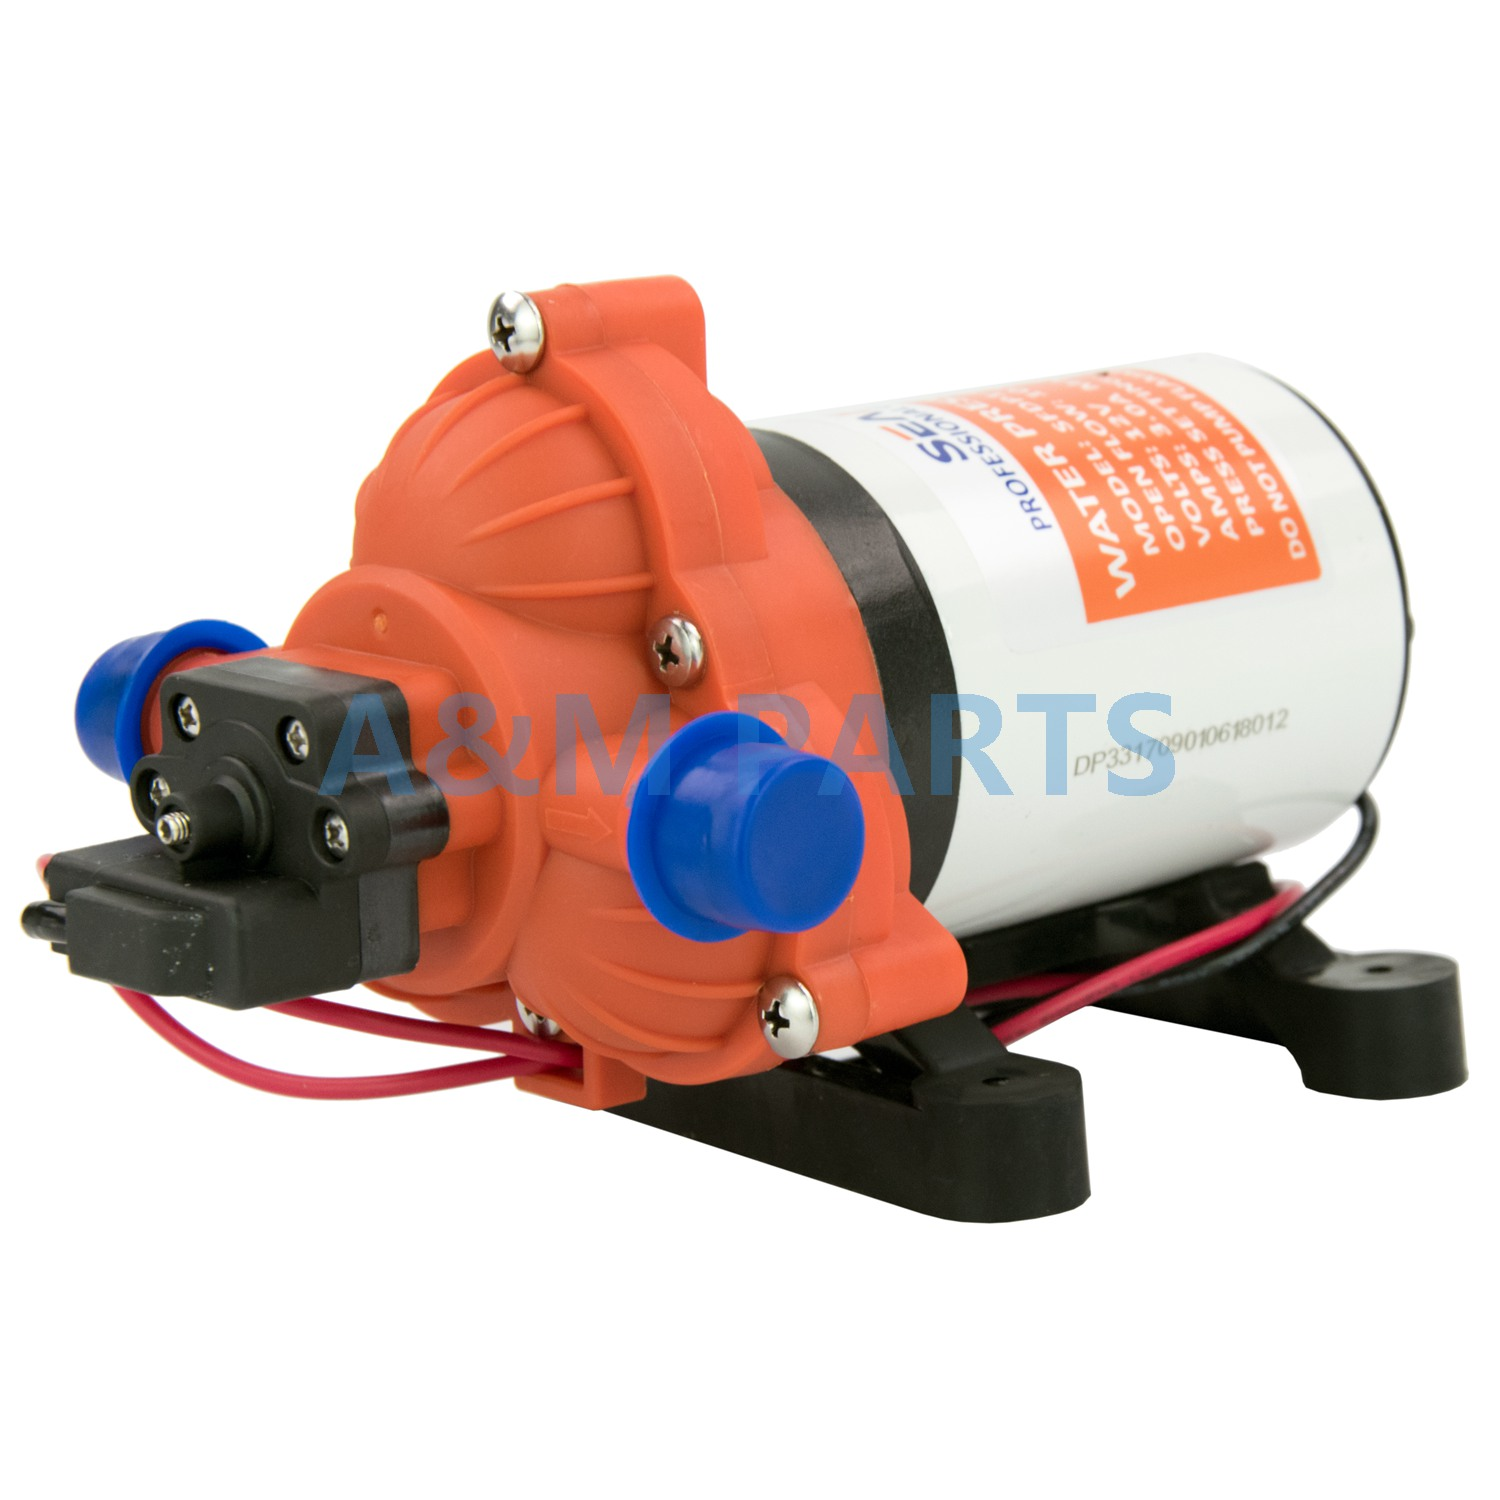 12V 45 PSI 2.8 GPM Self Priming Diaphragm Pump Boat Marine RV Water Pump 0 75kw self priming water pump for high rise wells in the river lake 220v household jet garden pump 4 5m3 h big capacity